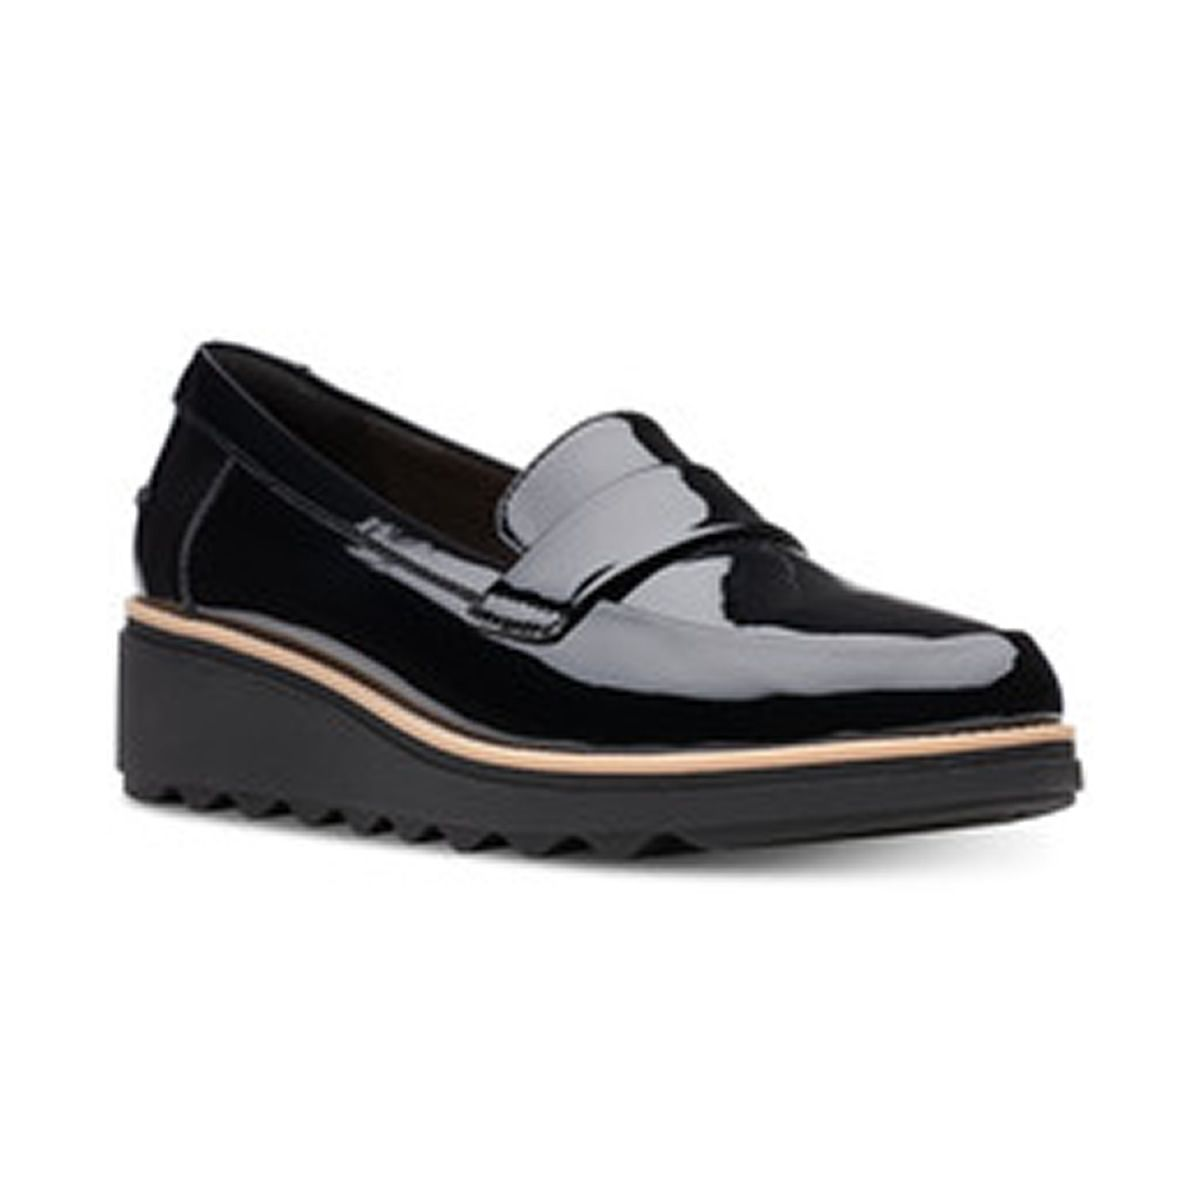 35fa7a4f2 Clarks Shoes for Women - Macy s